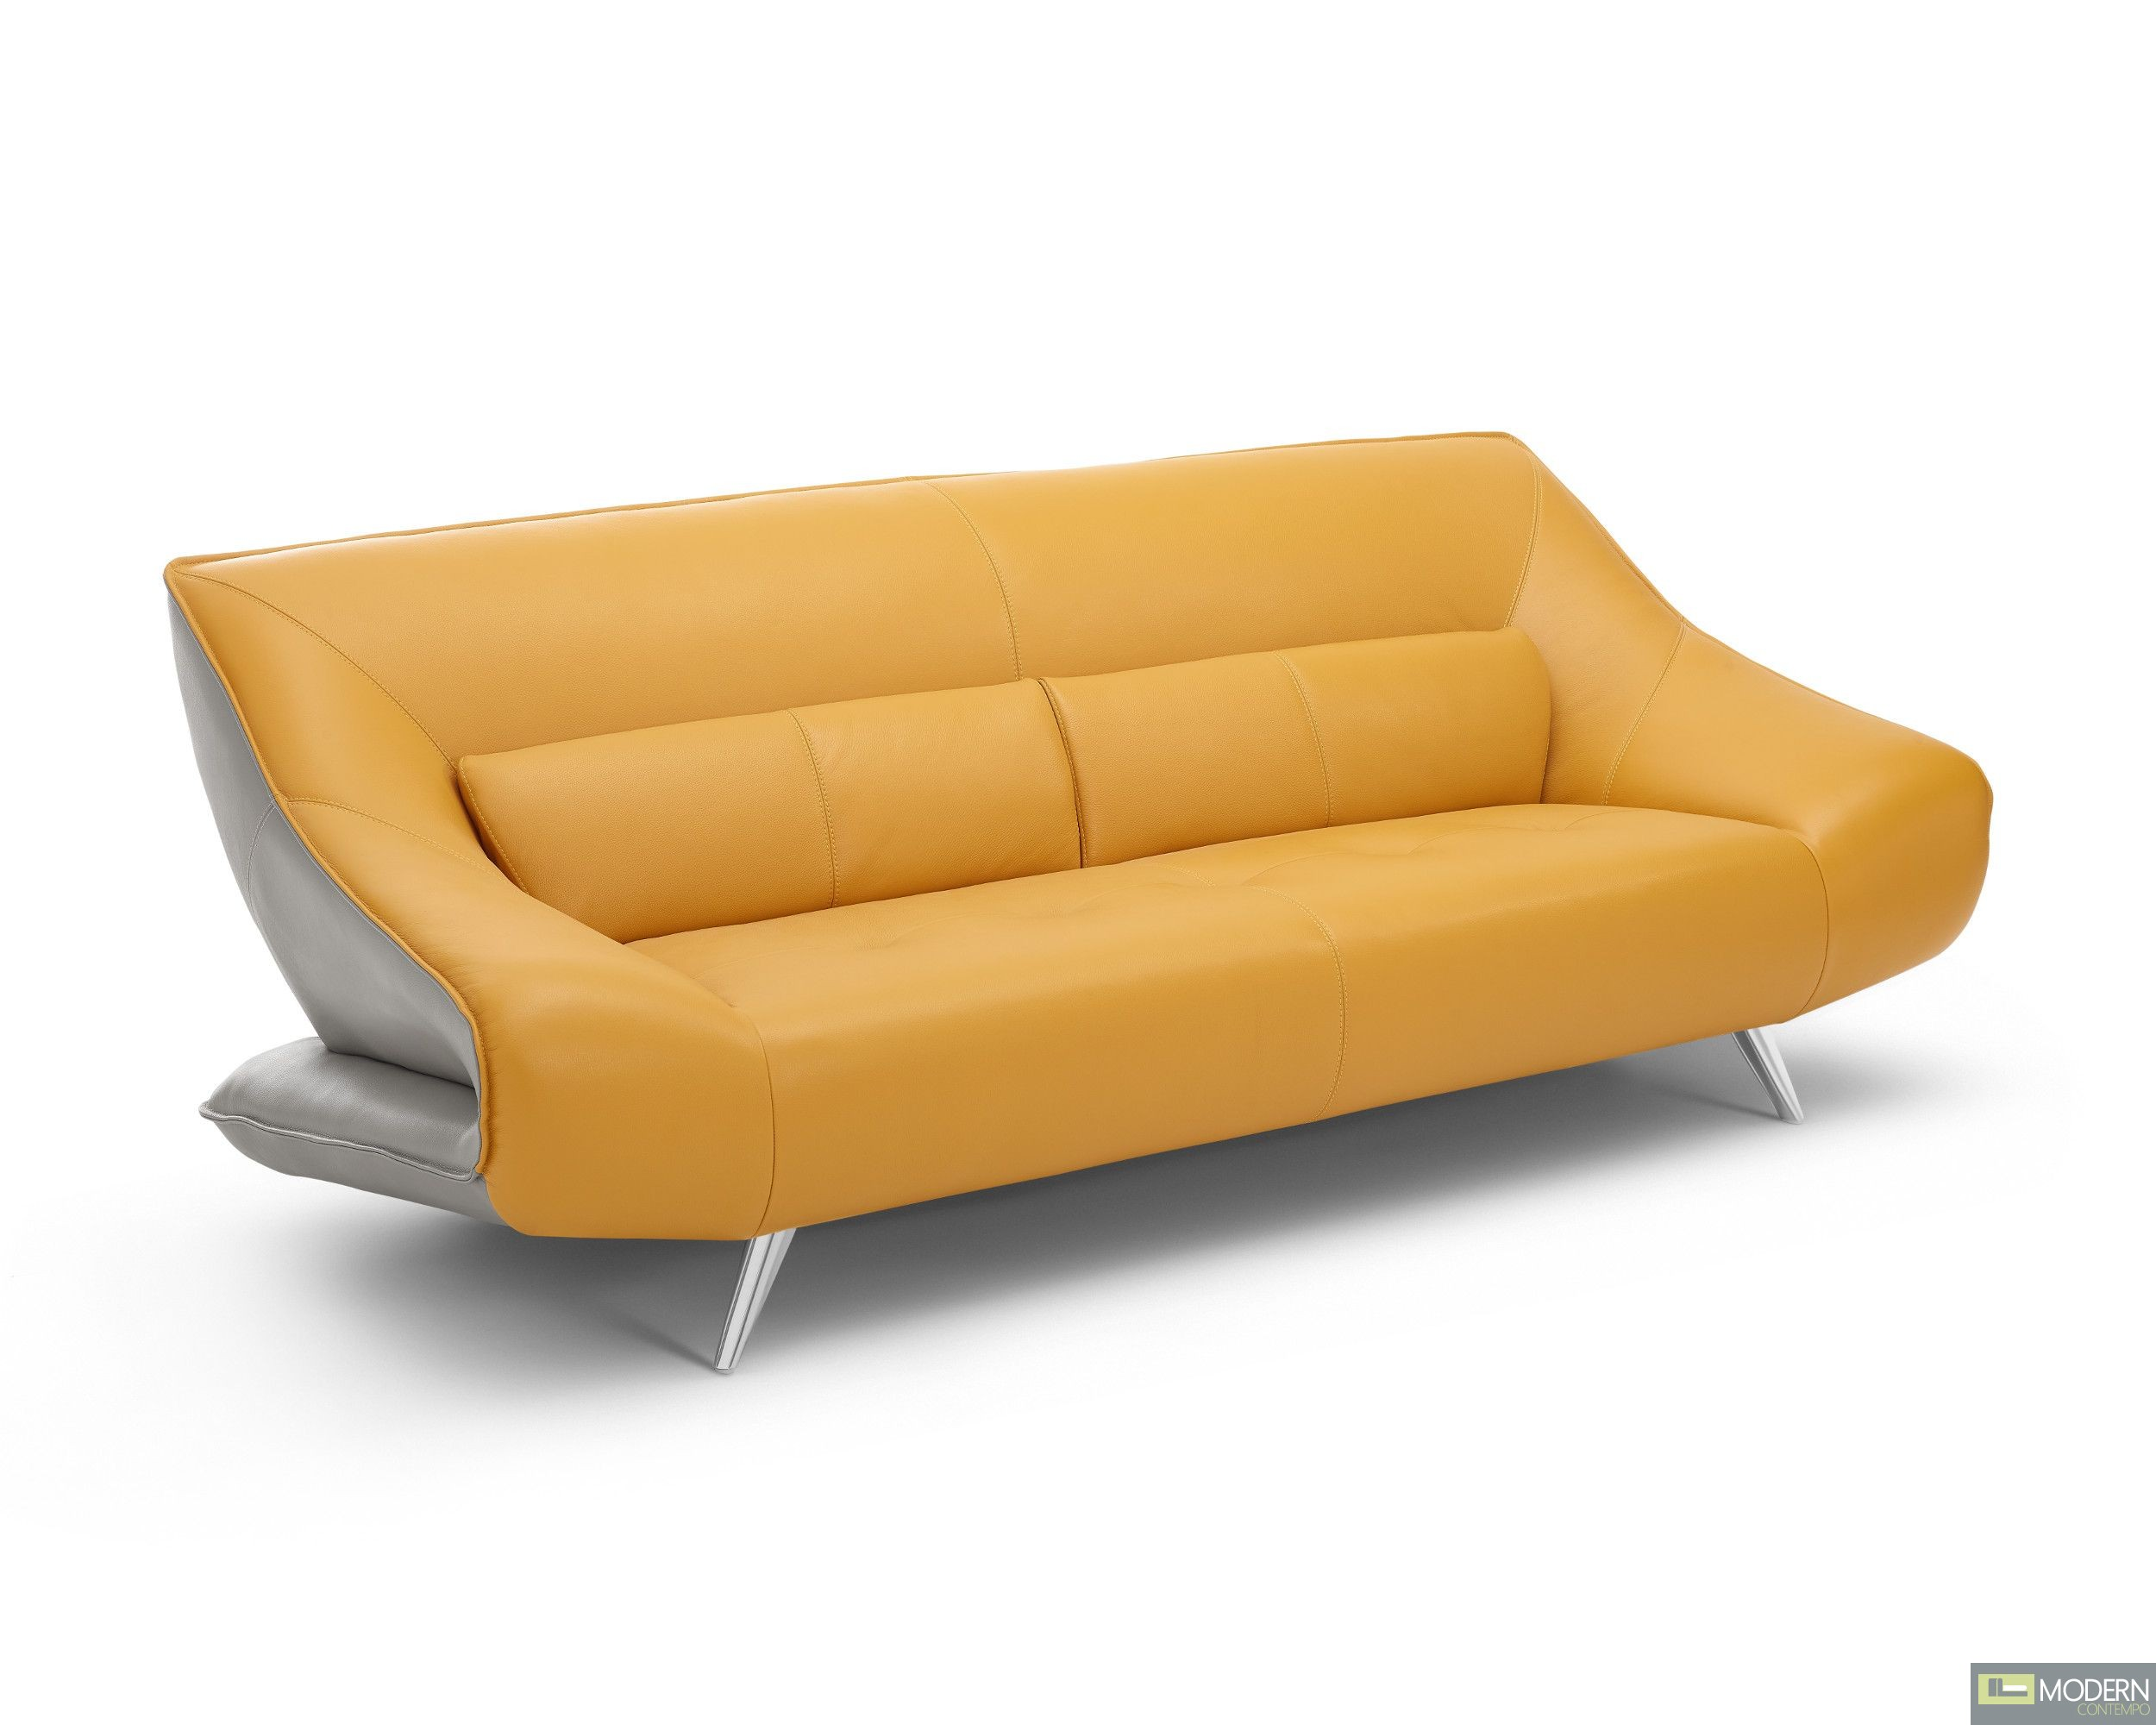 Modern Contempo Barcelona Italian Leather Sofa